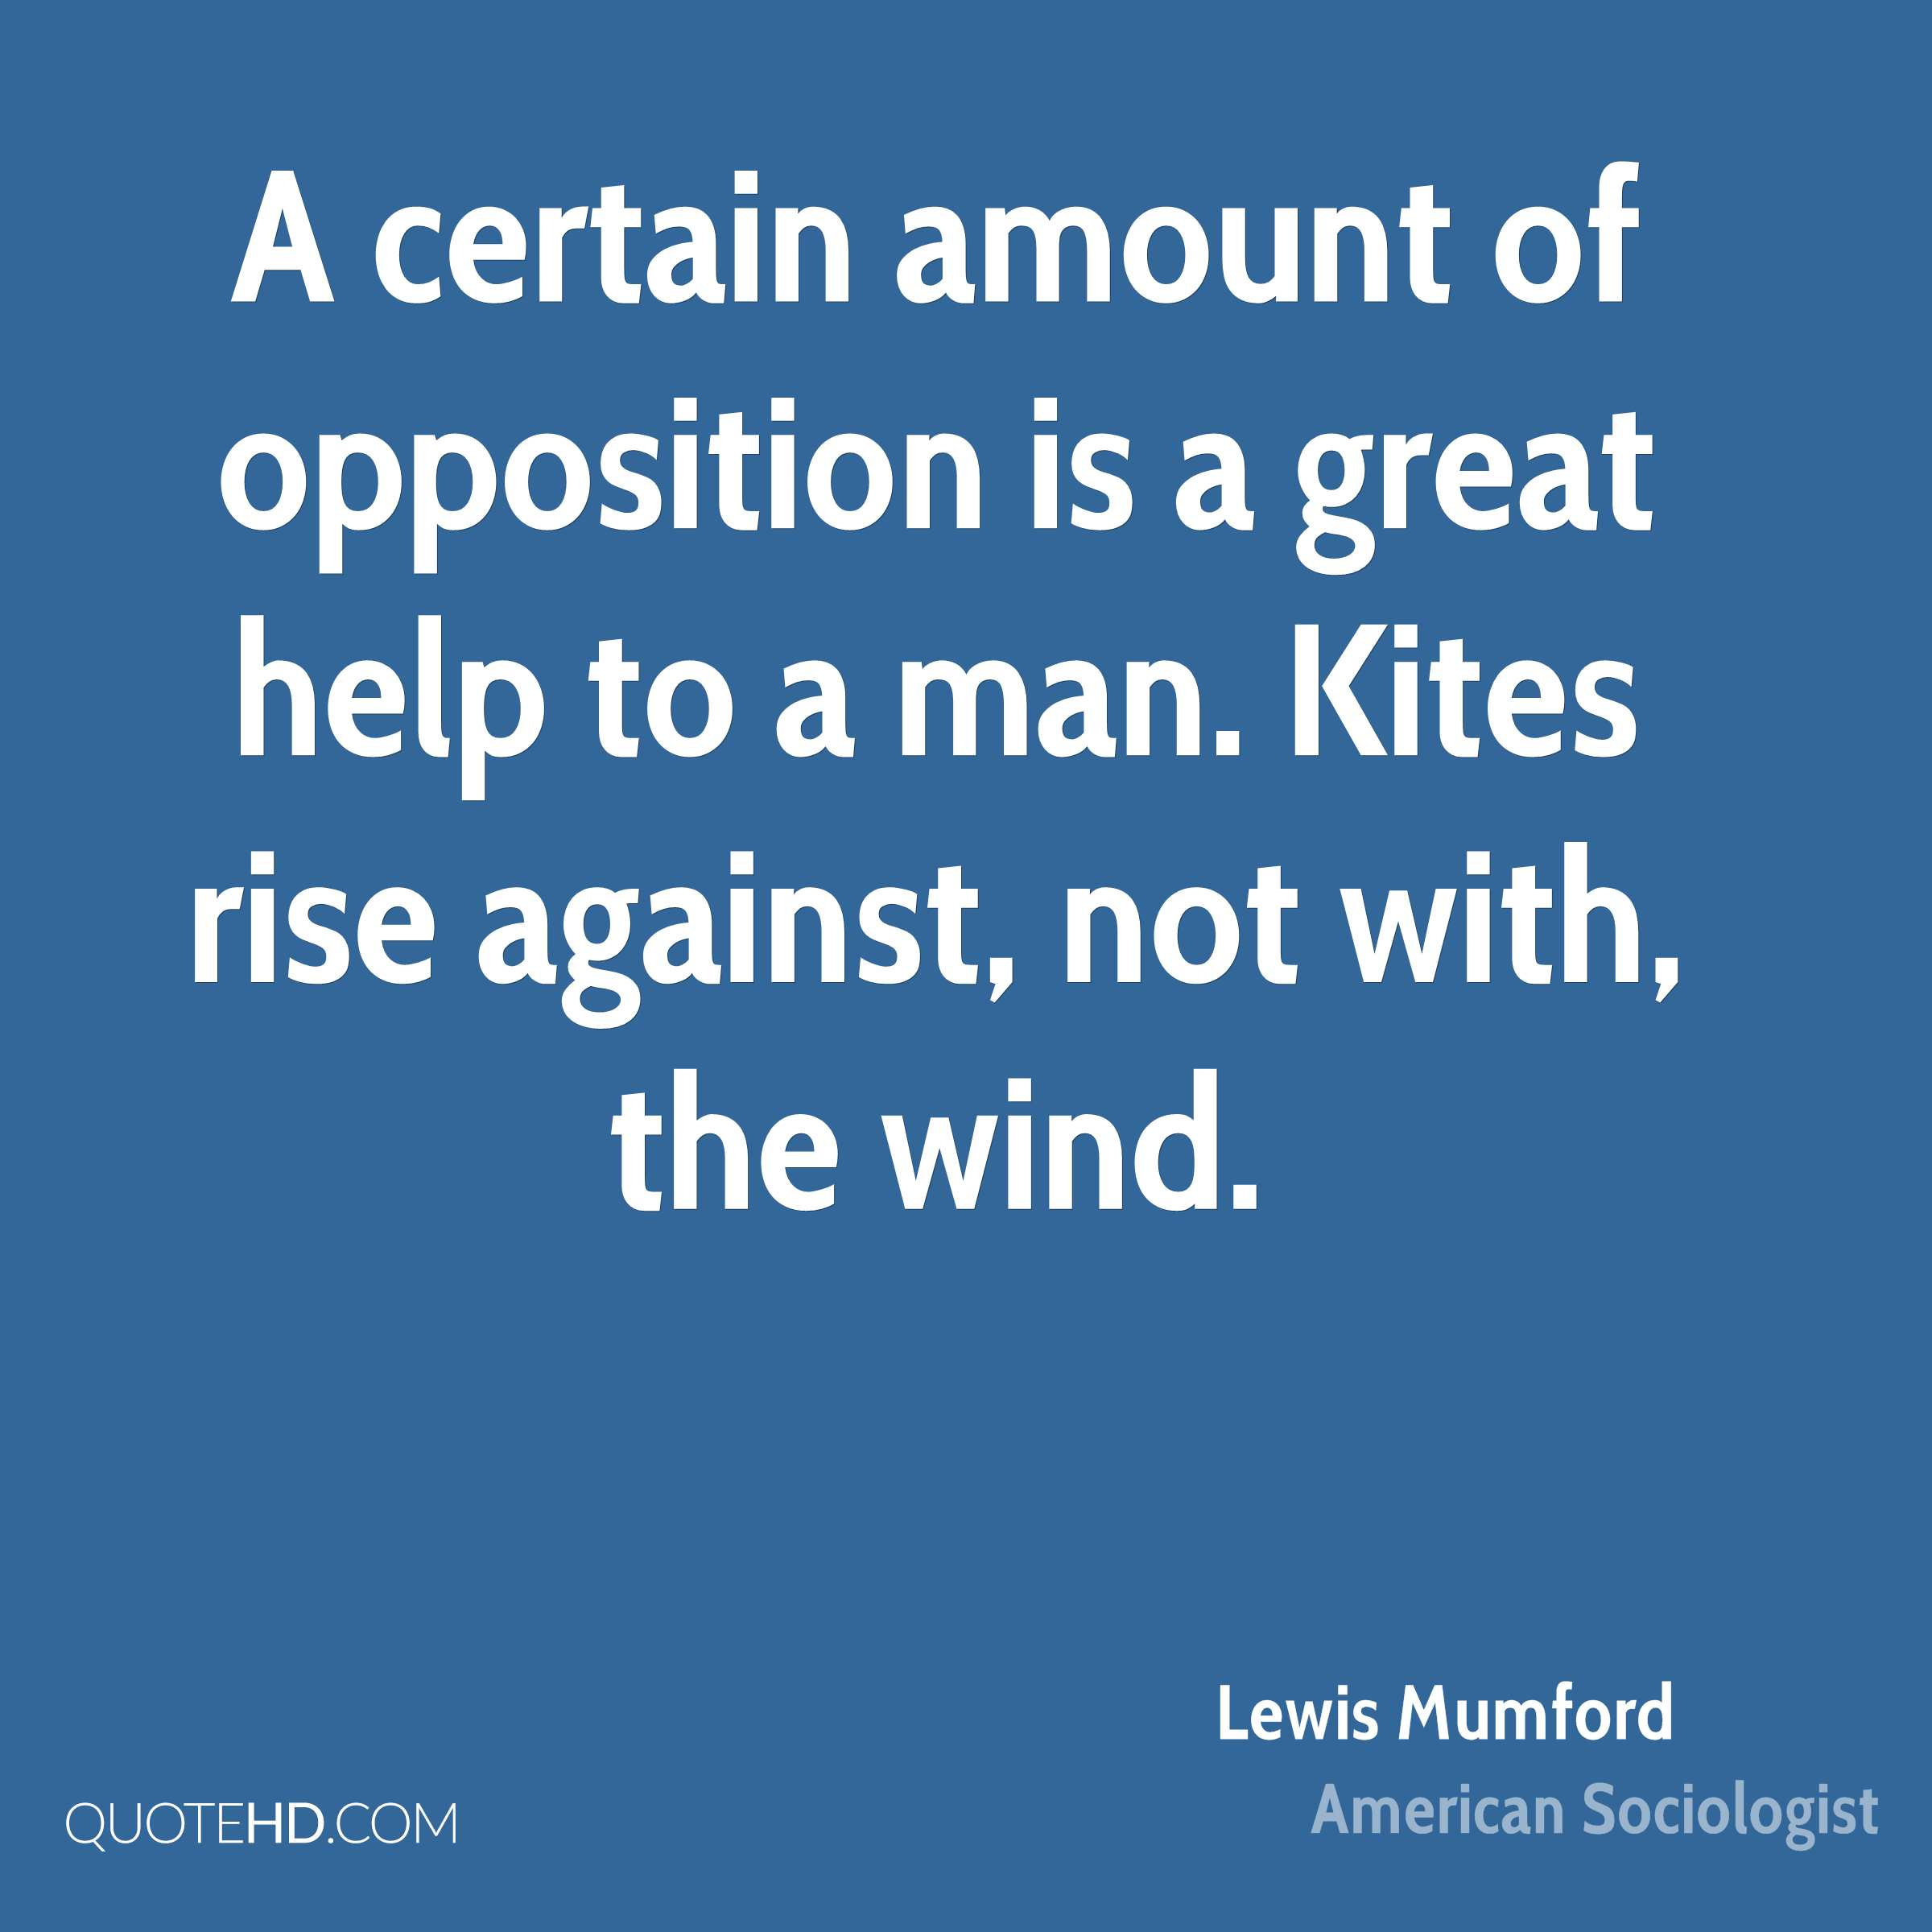 A certain amount of opposition is a great help to a man. Kites rise against, not with, the wind.